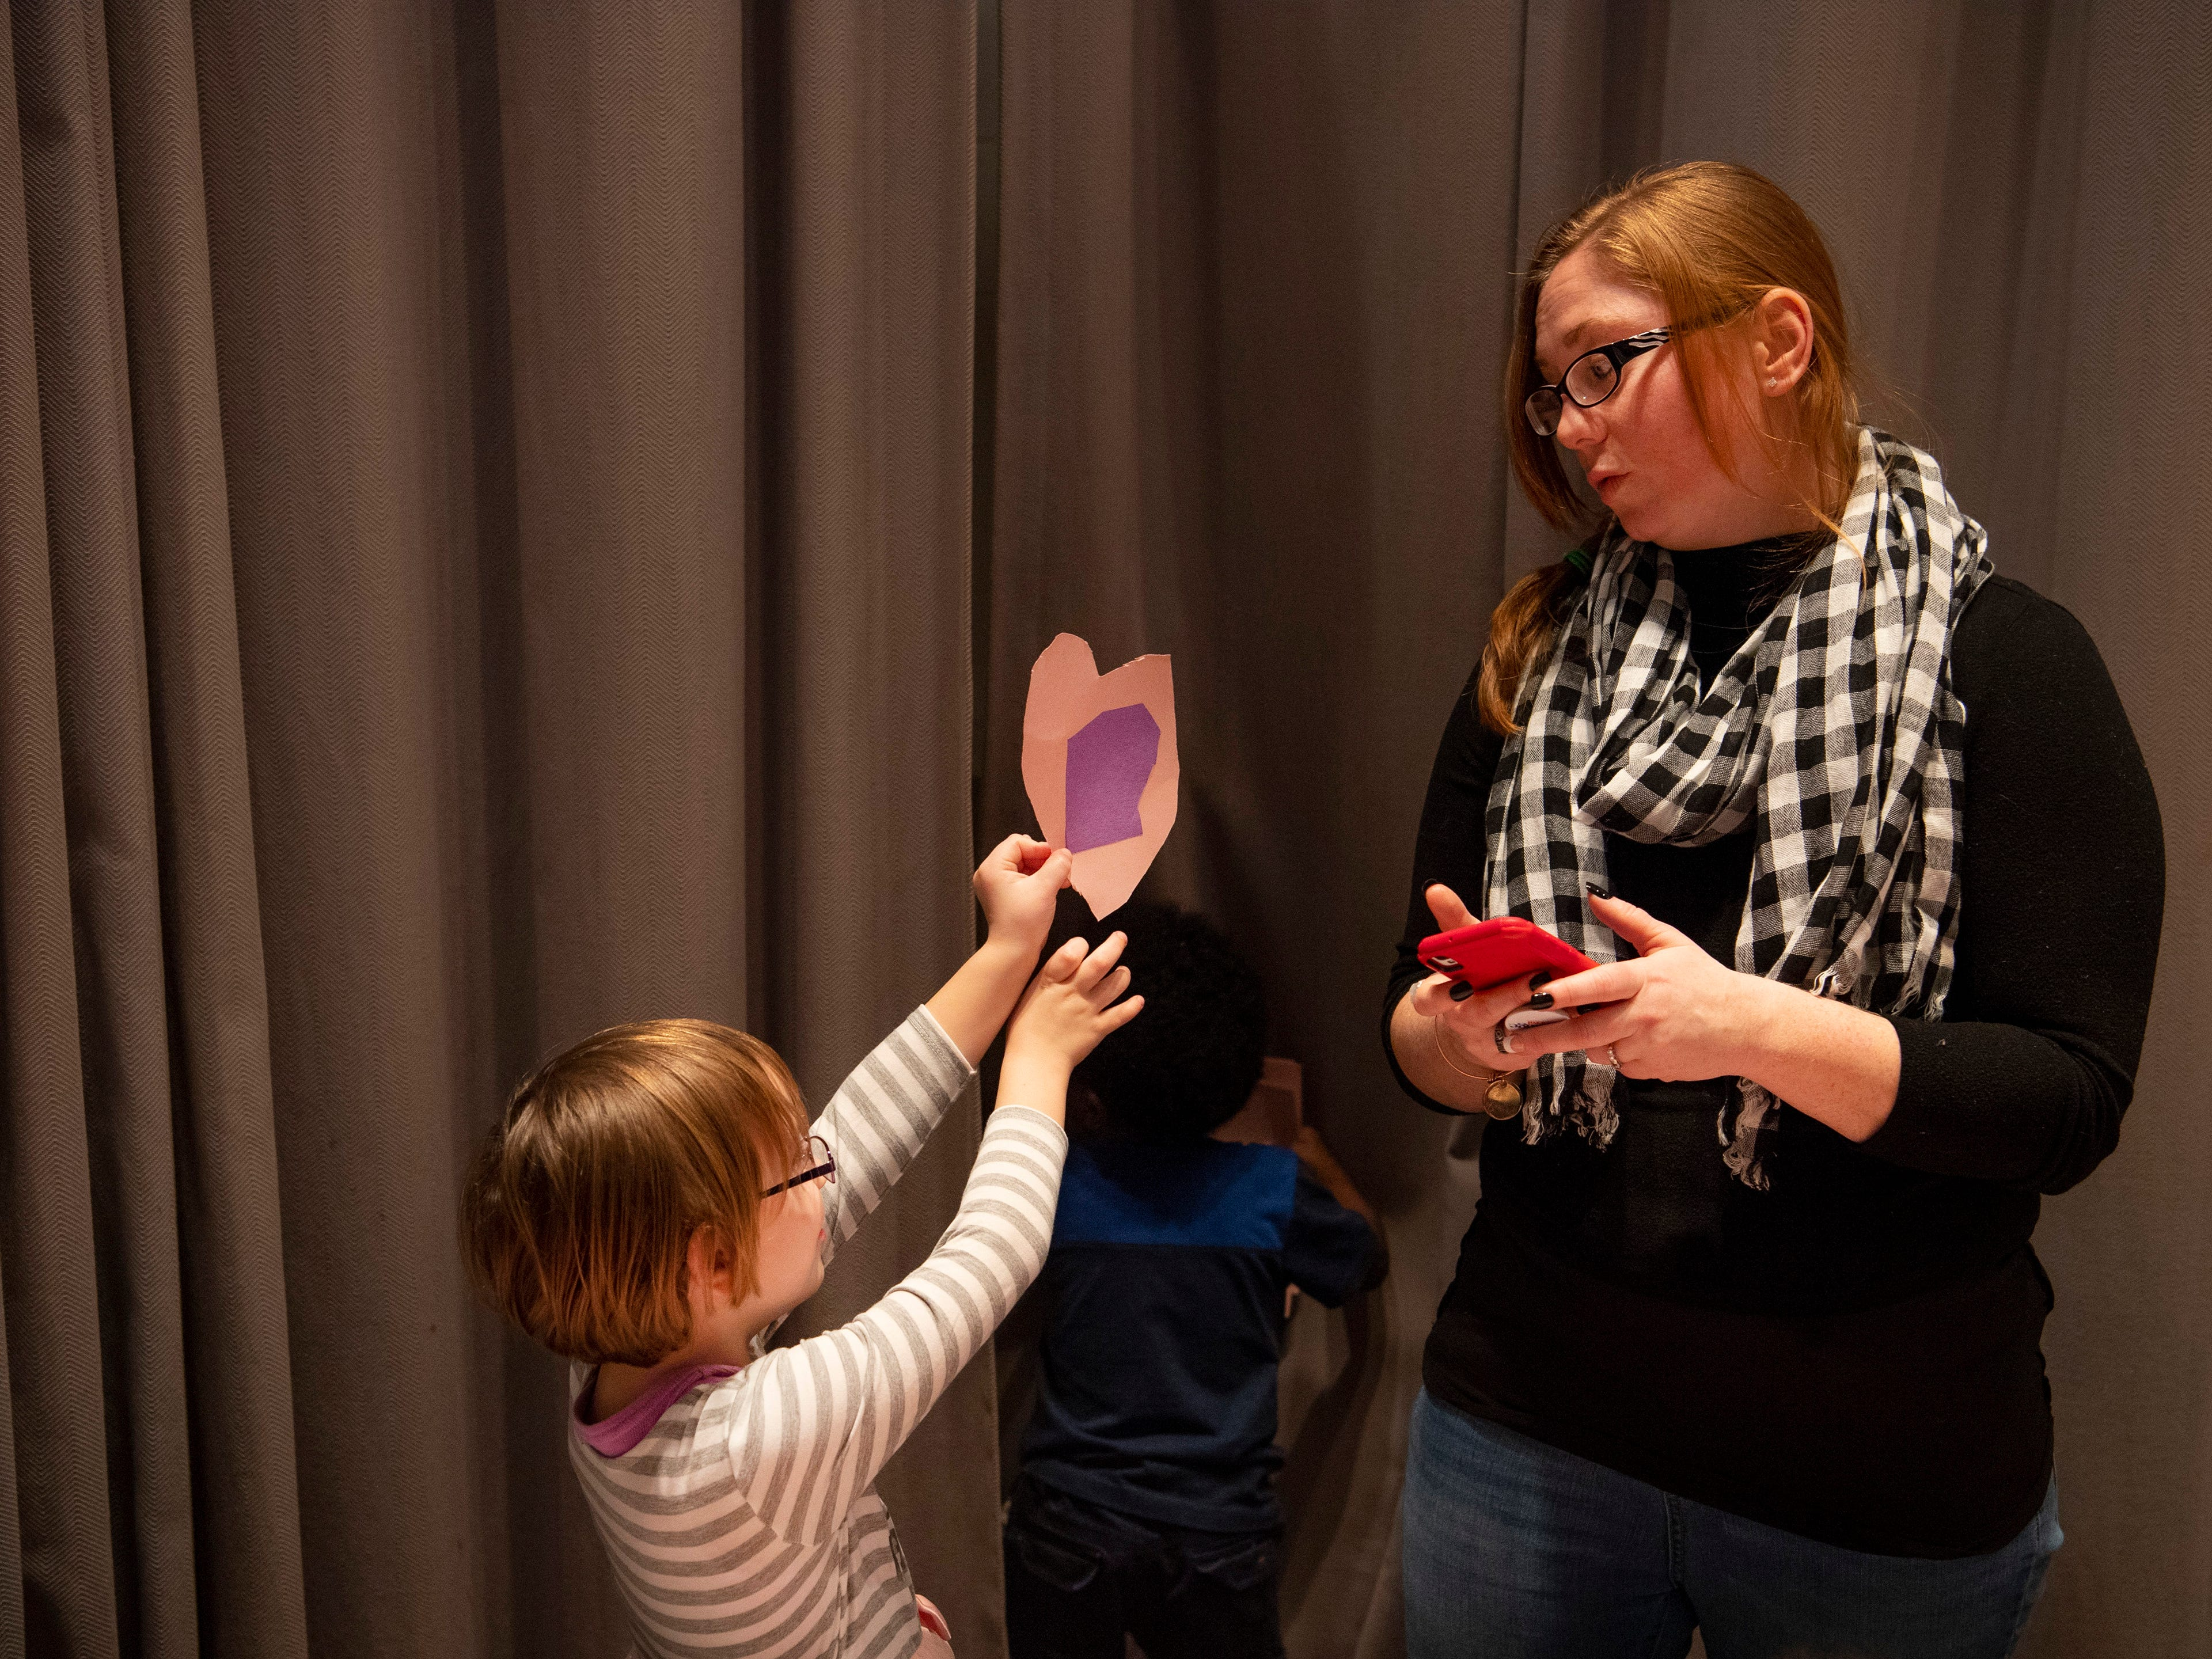 Charlotte Oldhamsharp, 5, presents her mom, Jesika, the construction paper valentine she created at the Sweetheart Dance at Caze Elementary School Tuesday night.